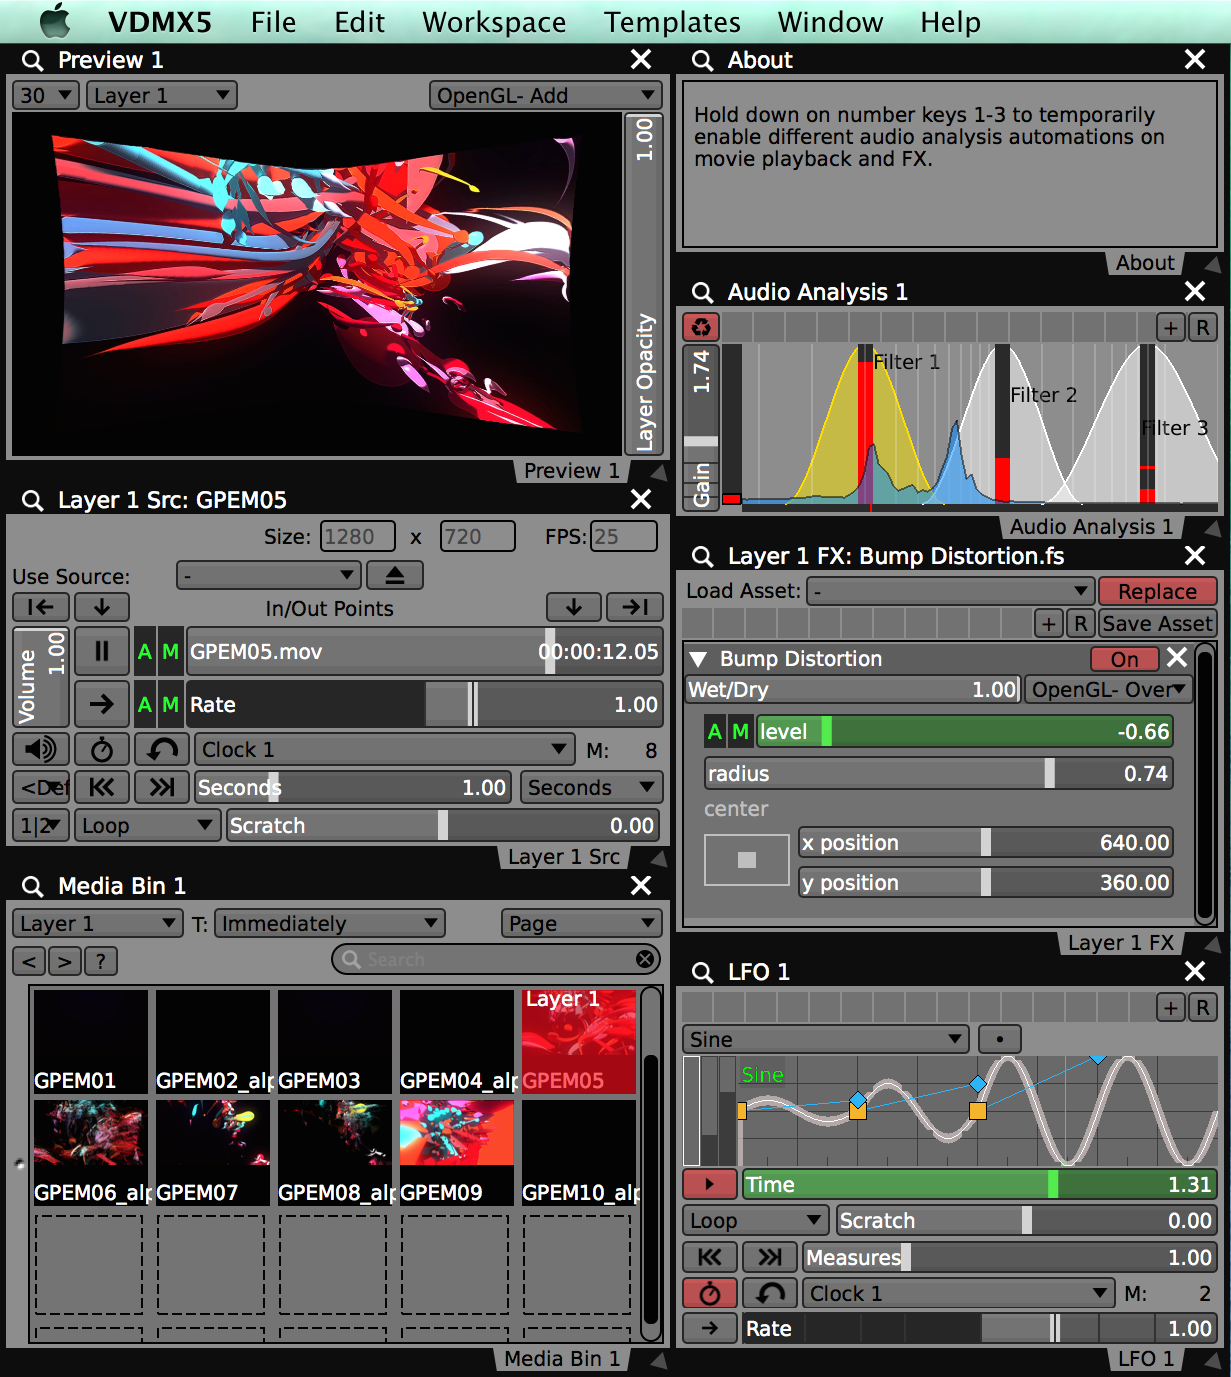 Audio analysis used to drive LFO and movie rate sliders to create complex FX behaviors.